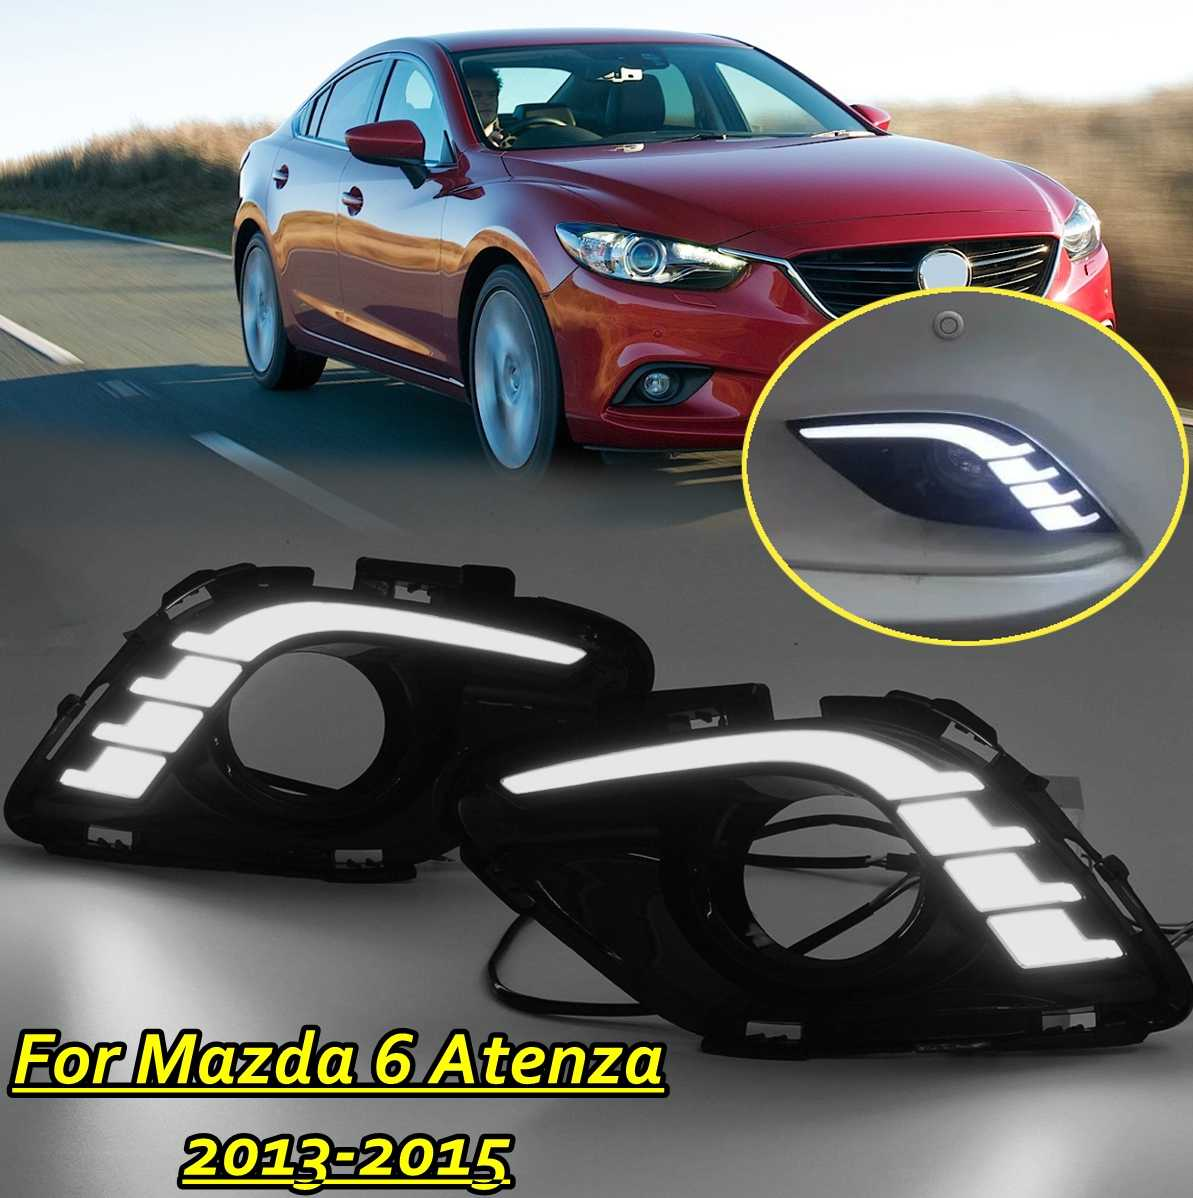 Pair <font><b>LED</b></font> DRL White Daytime Running <font><b>Lights</b></font> Daylight Fog <font><b>light</b></font> cover For <font><b>Mazda</b></font> <font><b>6</b></font> for Mazda6 For Atenza 2013 2014 2015 image